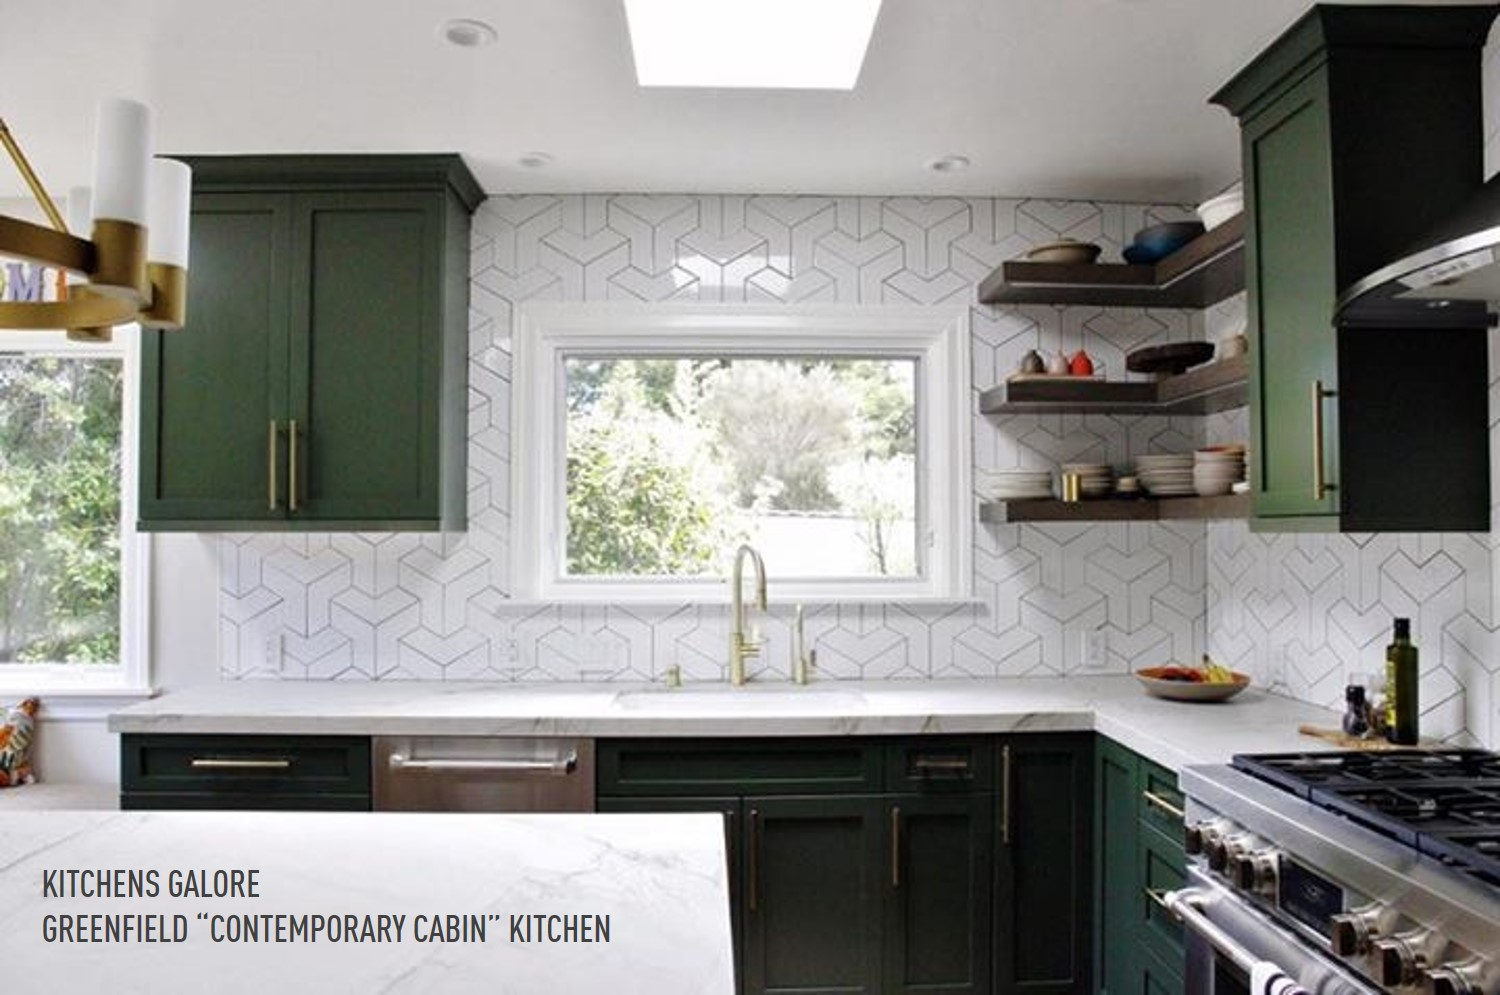 DESIGNER INSPIRATIONS BY KITCHENS GALORE - Greenfield Cabinetry